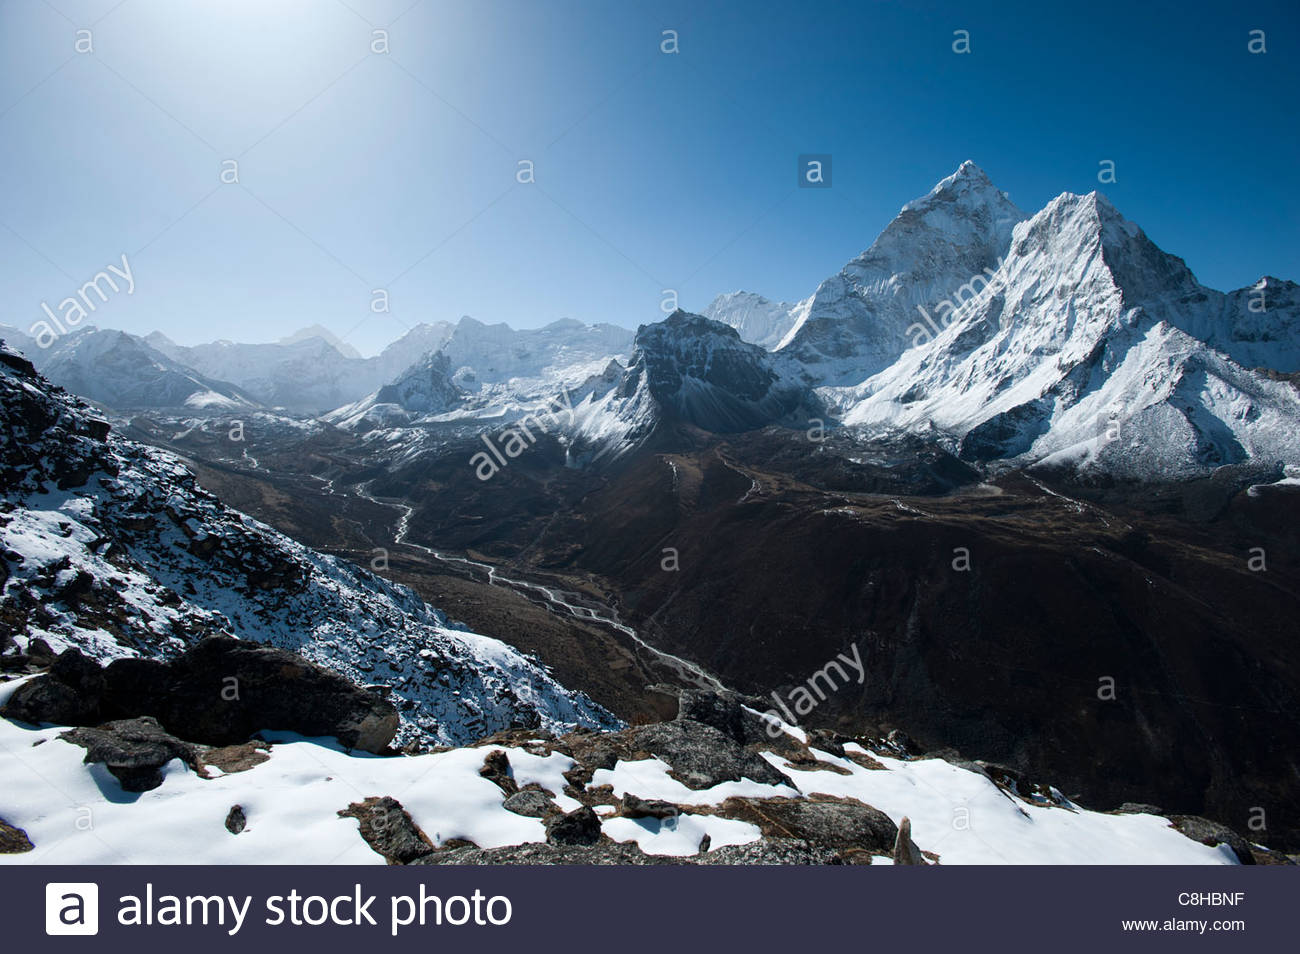 Ama Dablam from above Dingboche. Makalu is also visible distant left - Stock Image